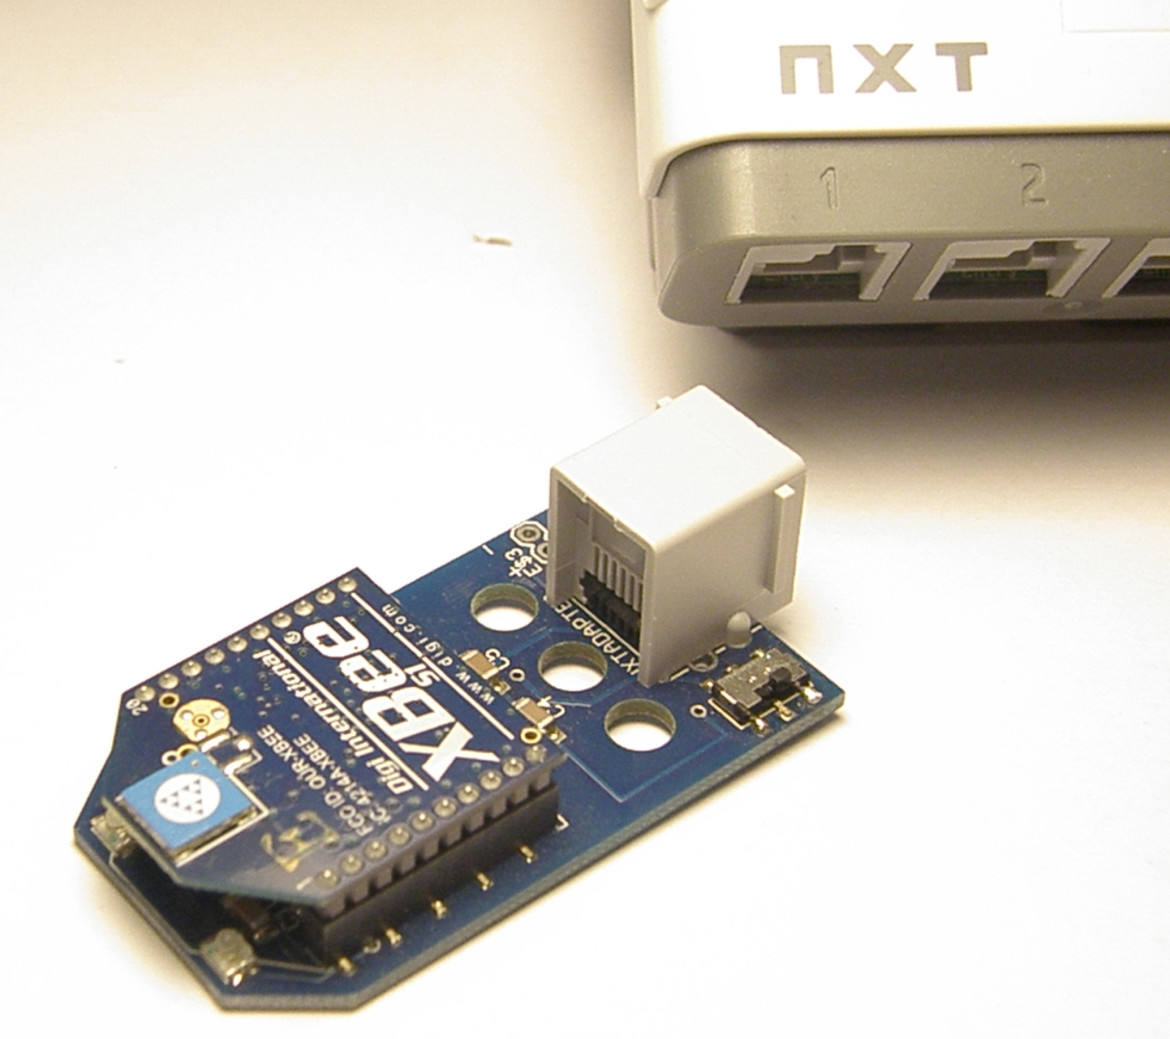 The NXTBee now with Labview for LEGO MINDSTORMS